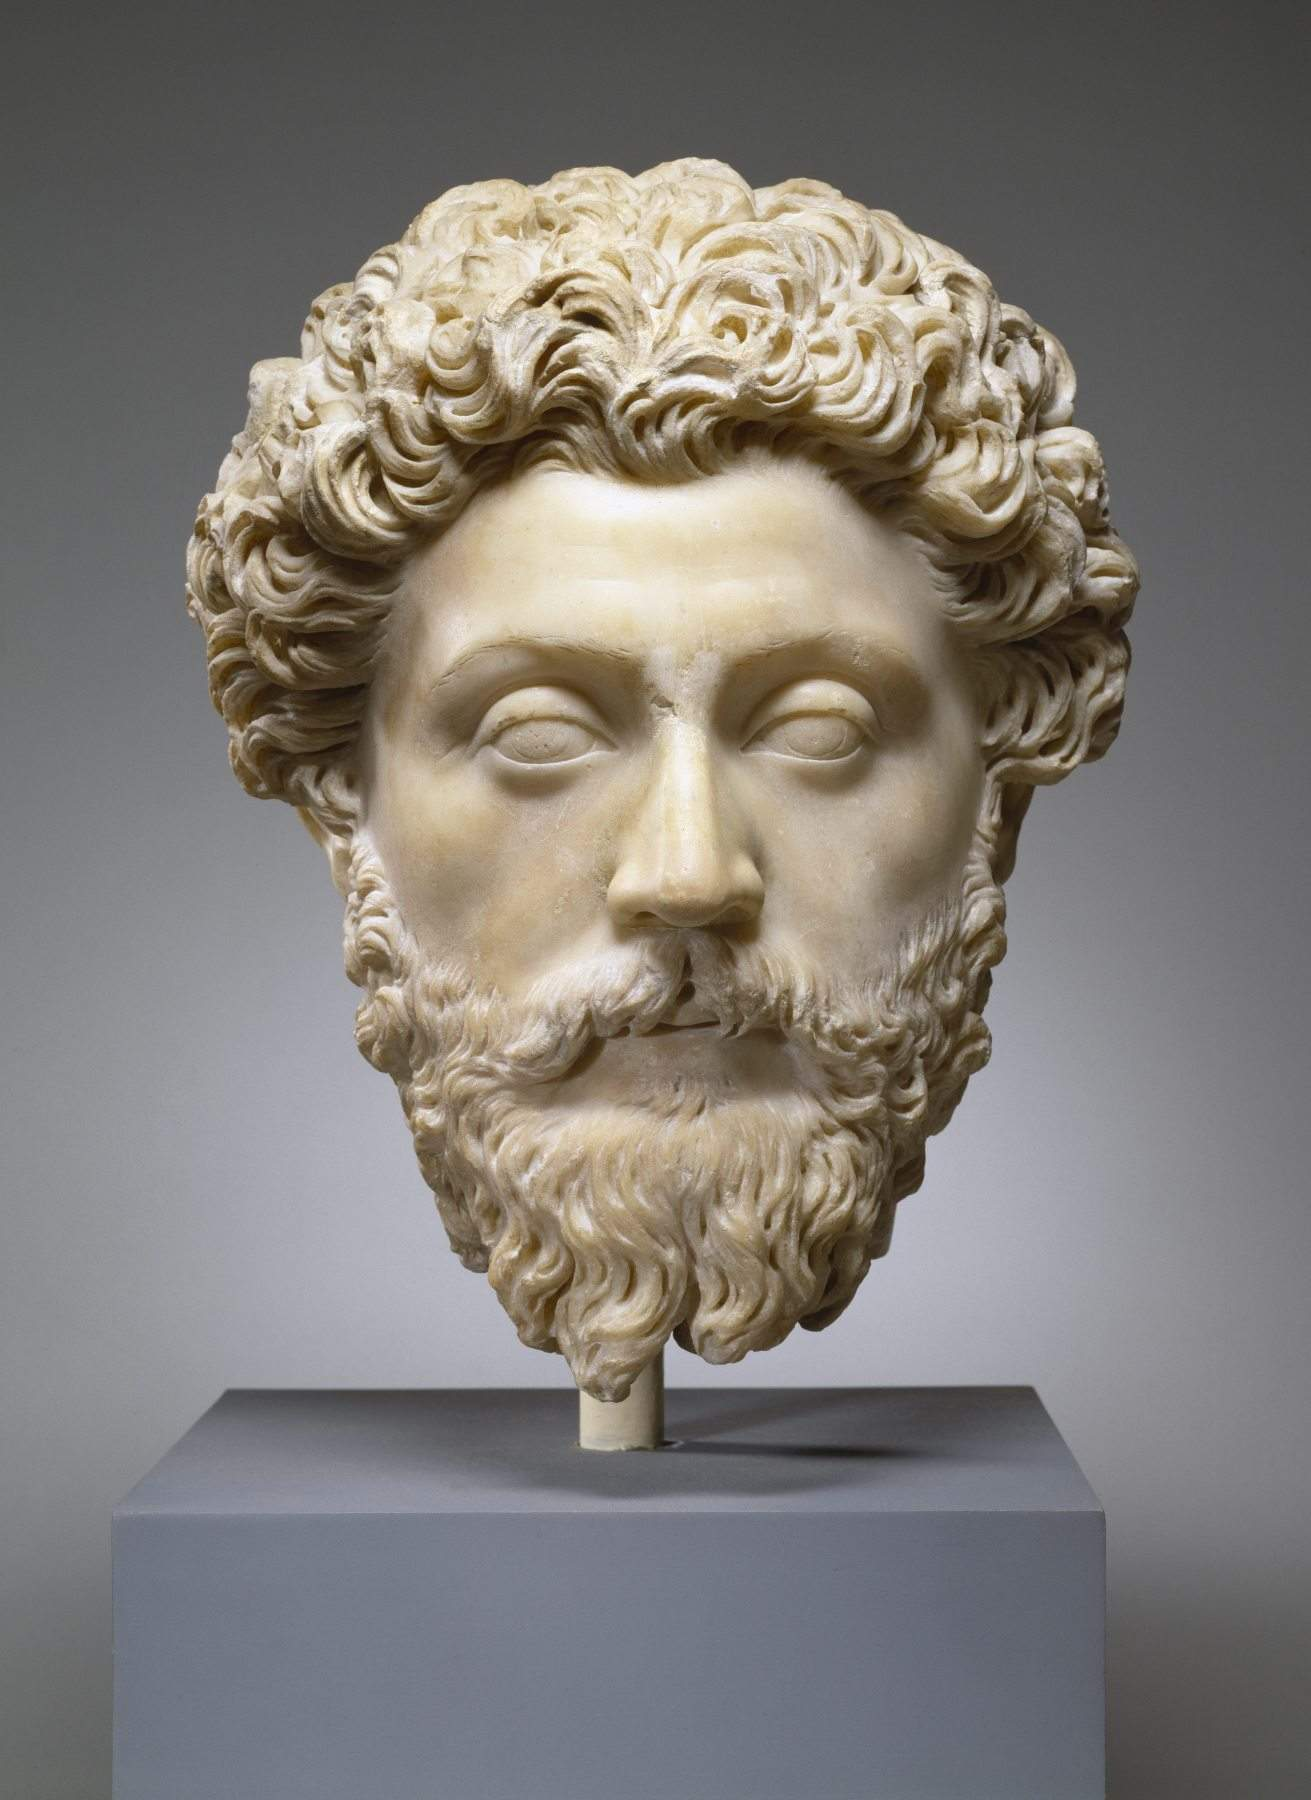 roman_-_portrait_of_the_emperor_marcus_aurelius_-_walters_23215